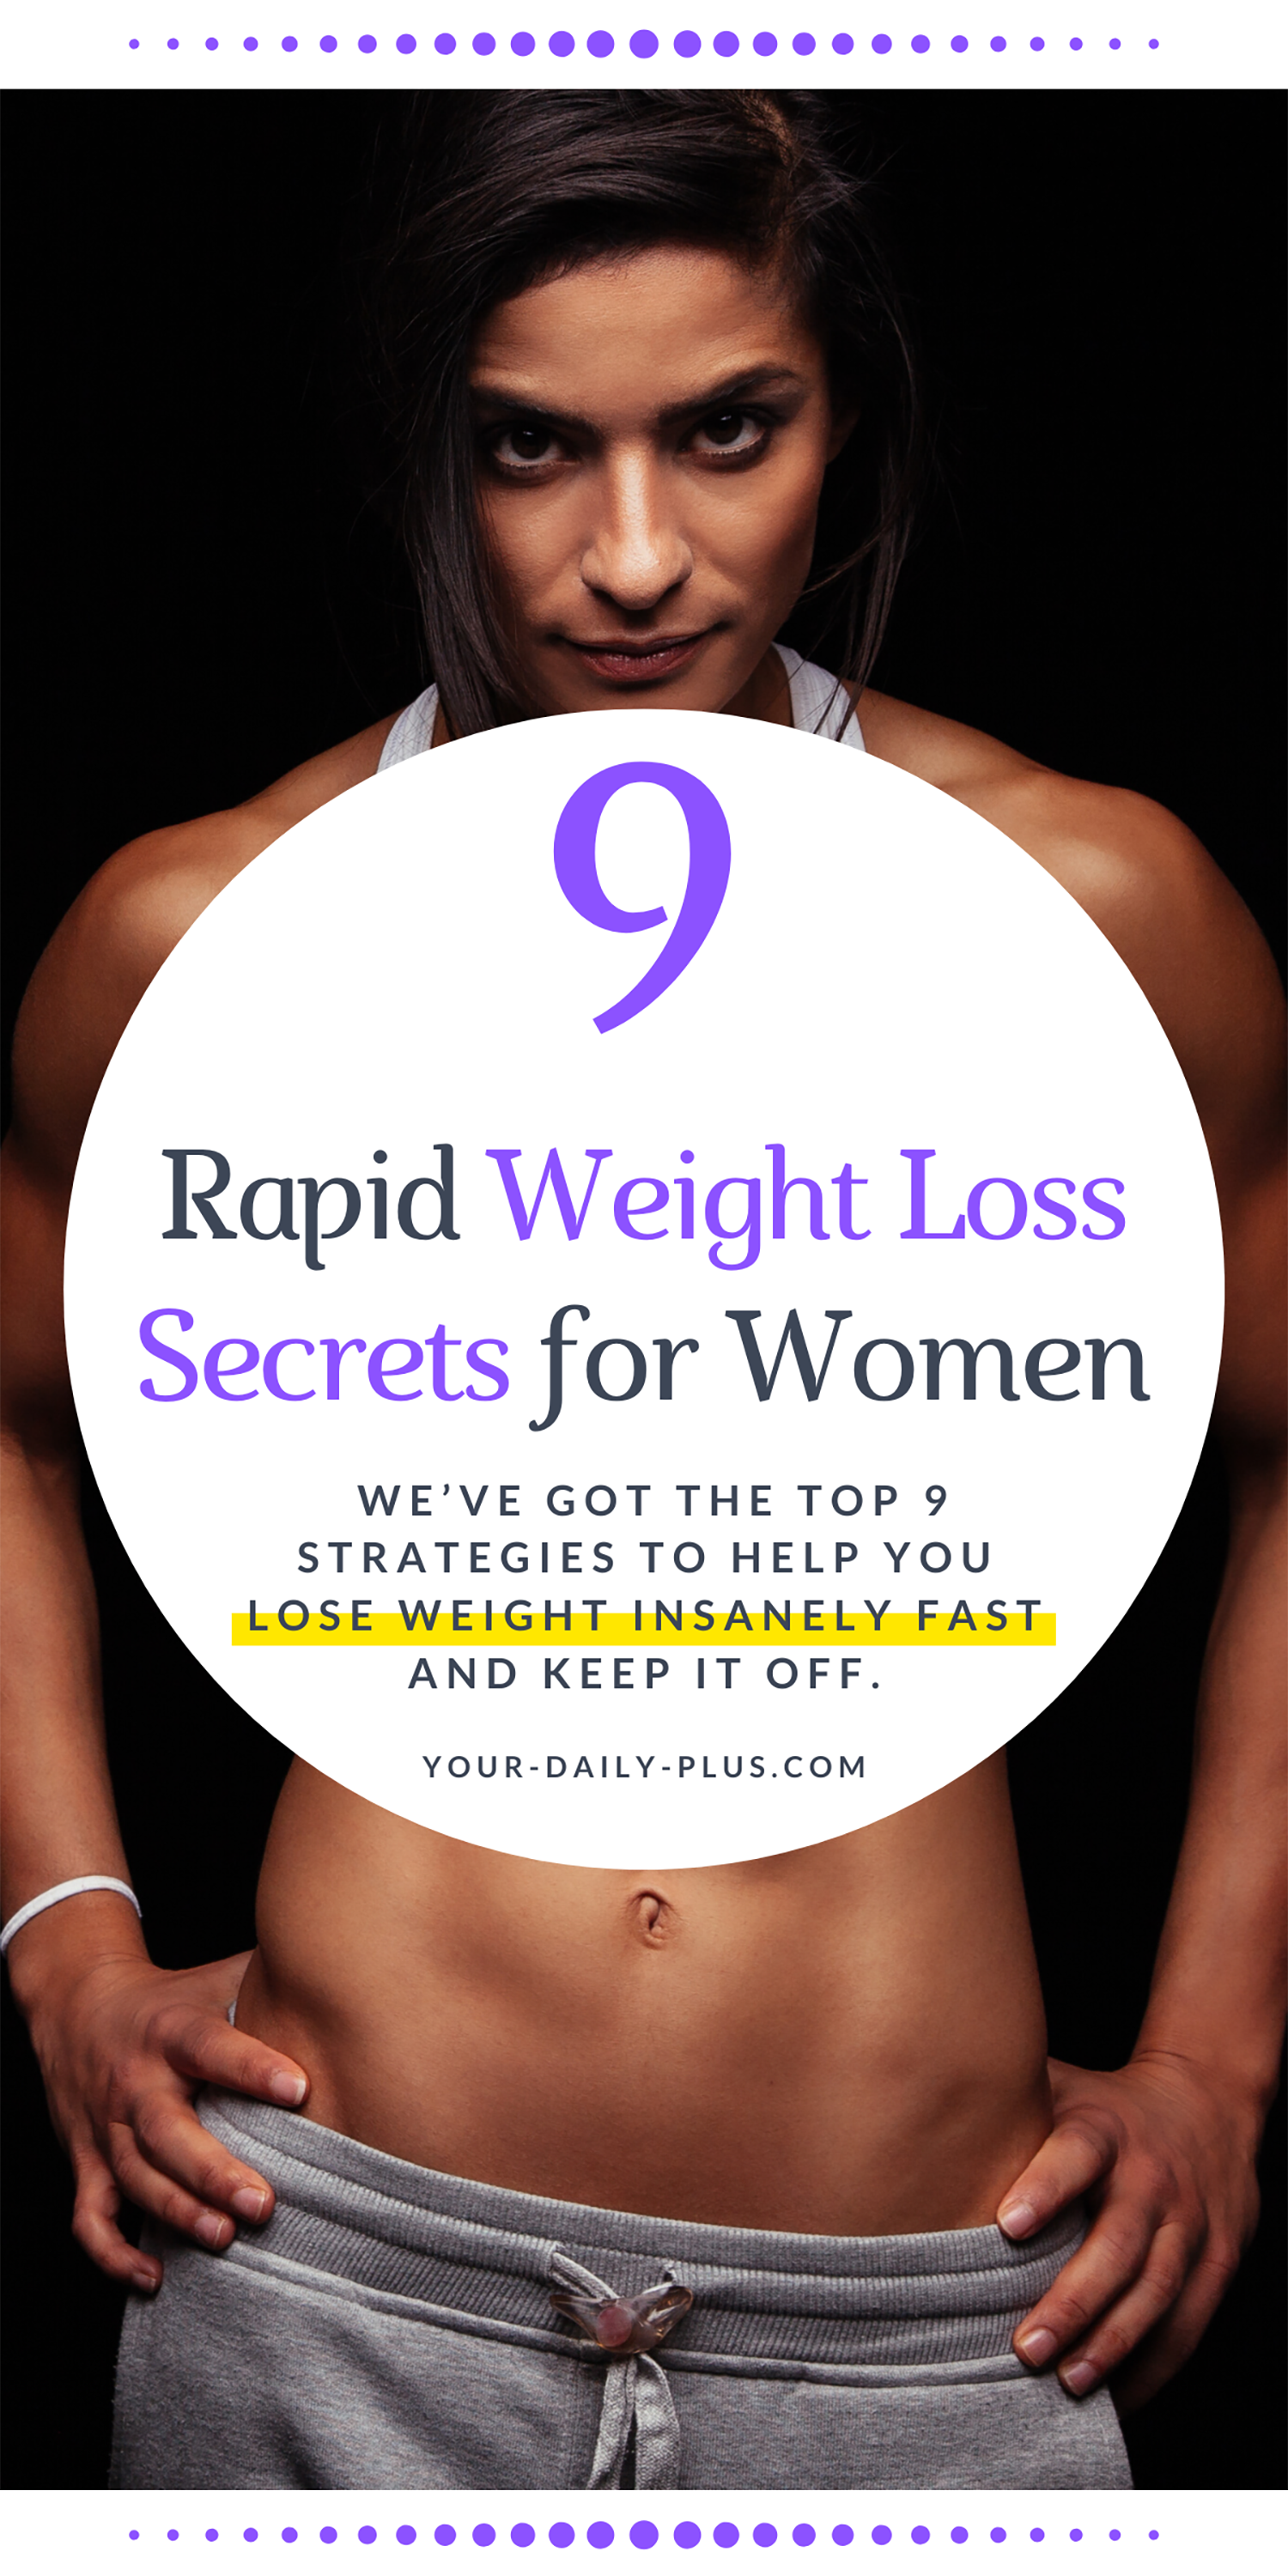 We've put together 9 secret strategies that we guarantee to promote rapid weight loss and improve your health. #healthy #fitness #weightloss